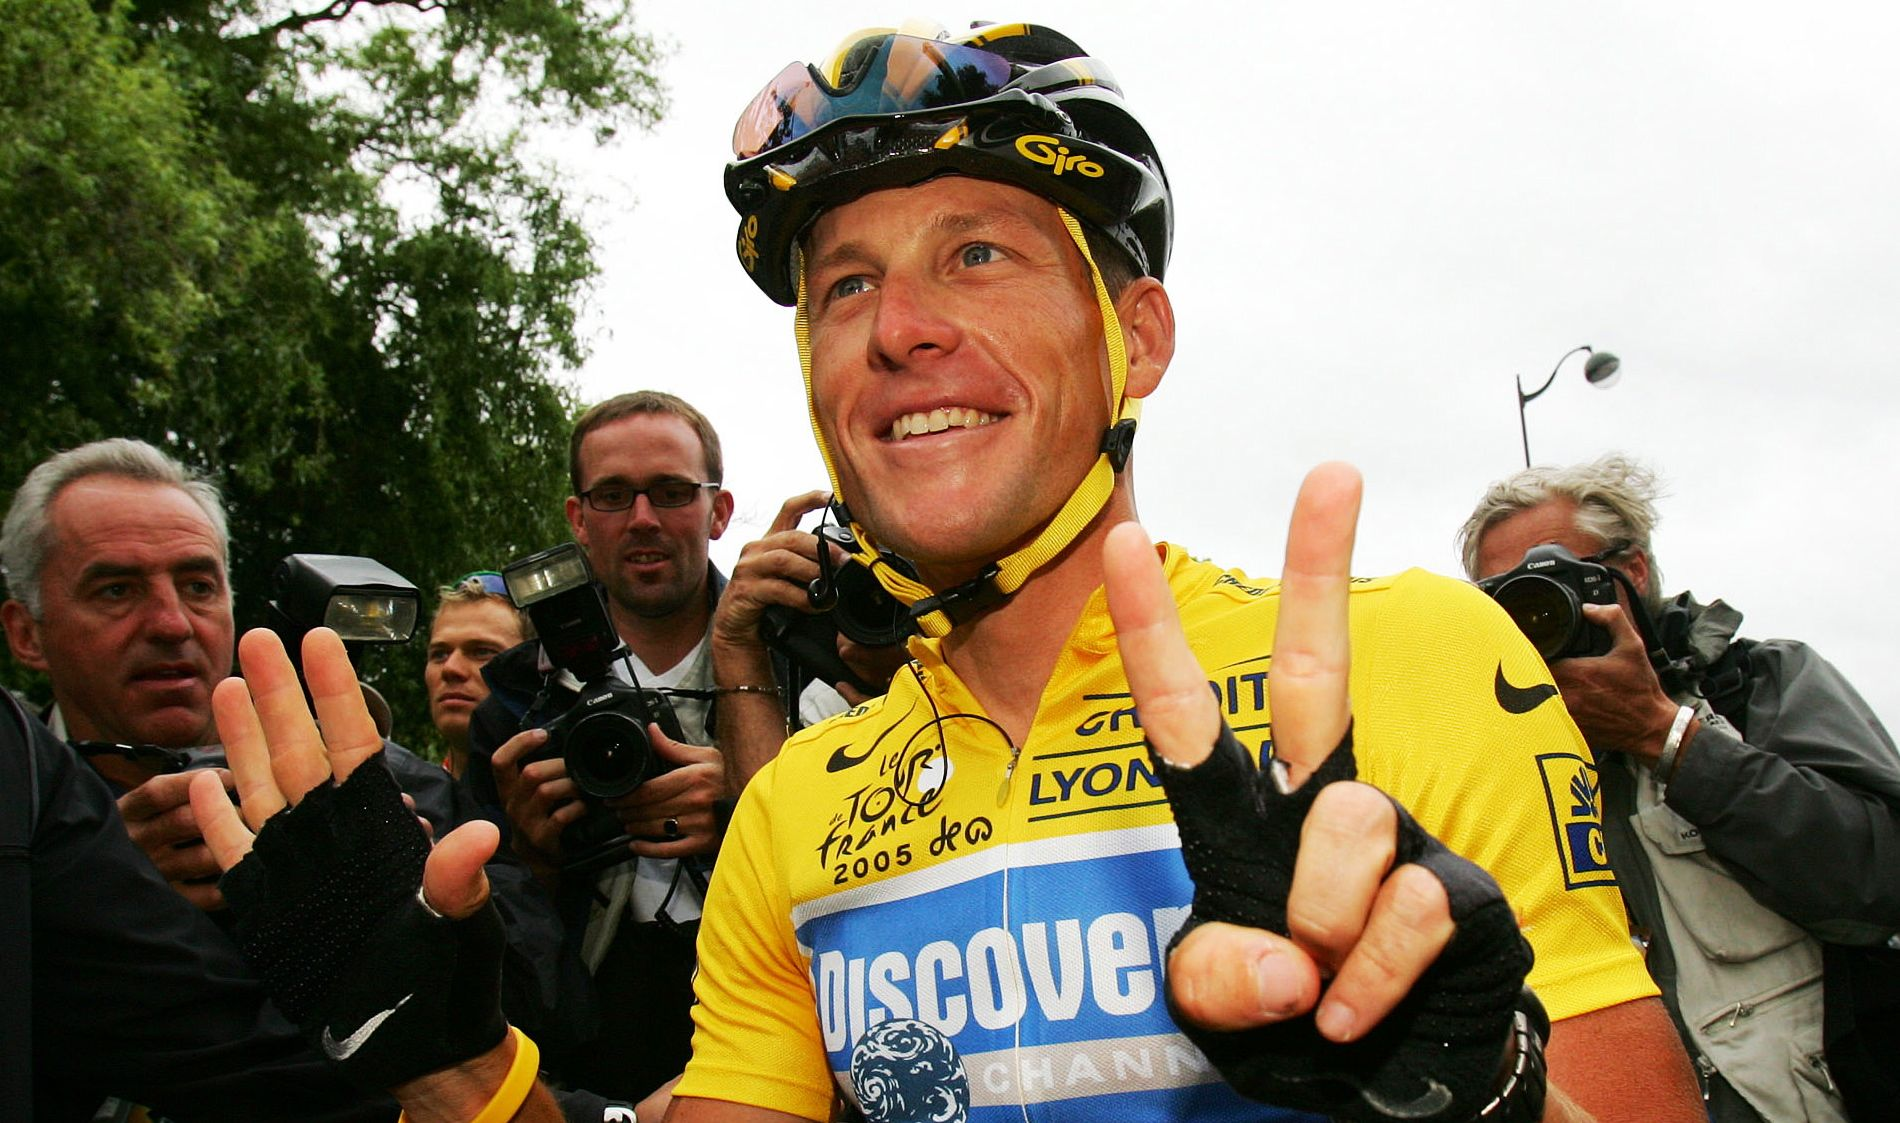 http://fitsnews.com/wp-content/uploads/2013/01/lance-armstrong-doping.jpg